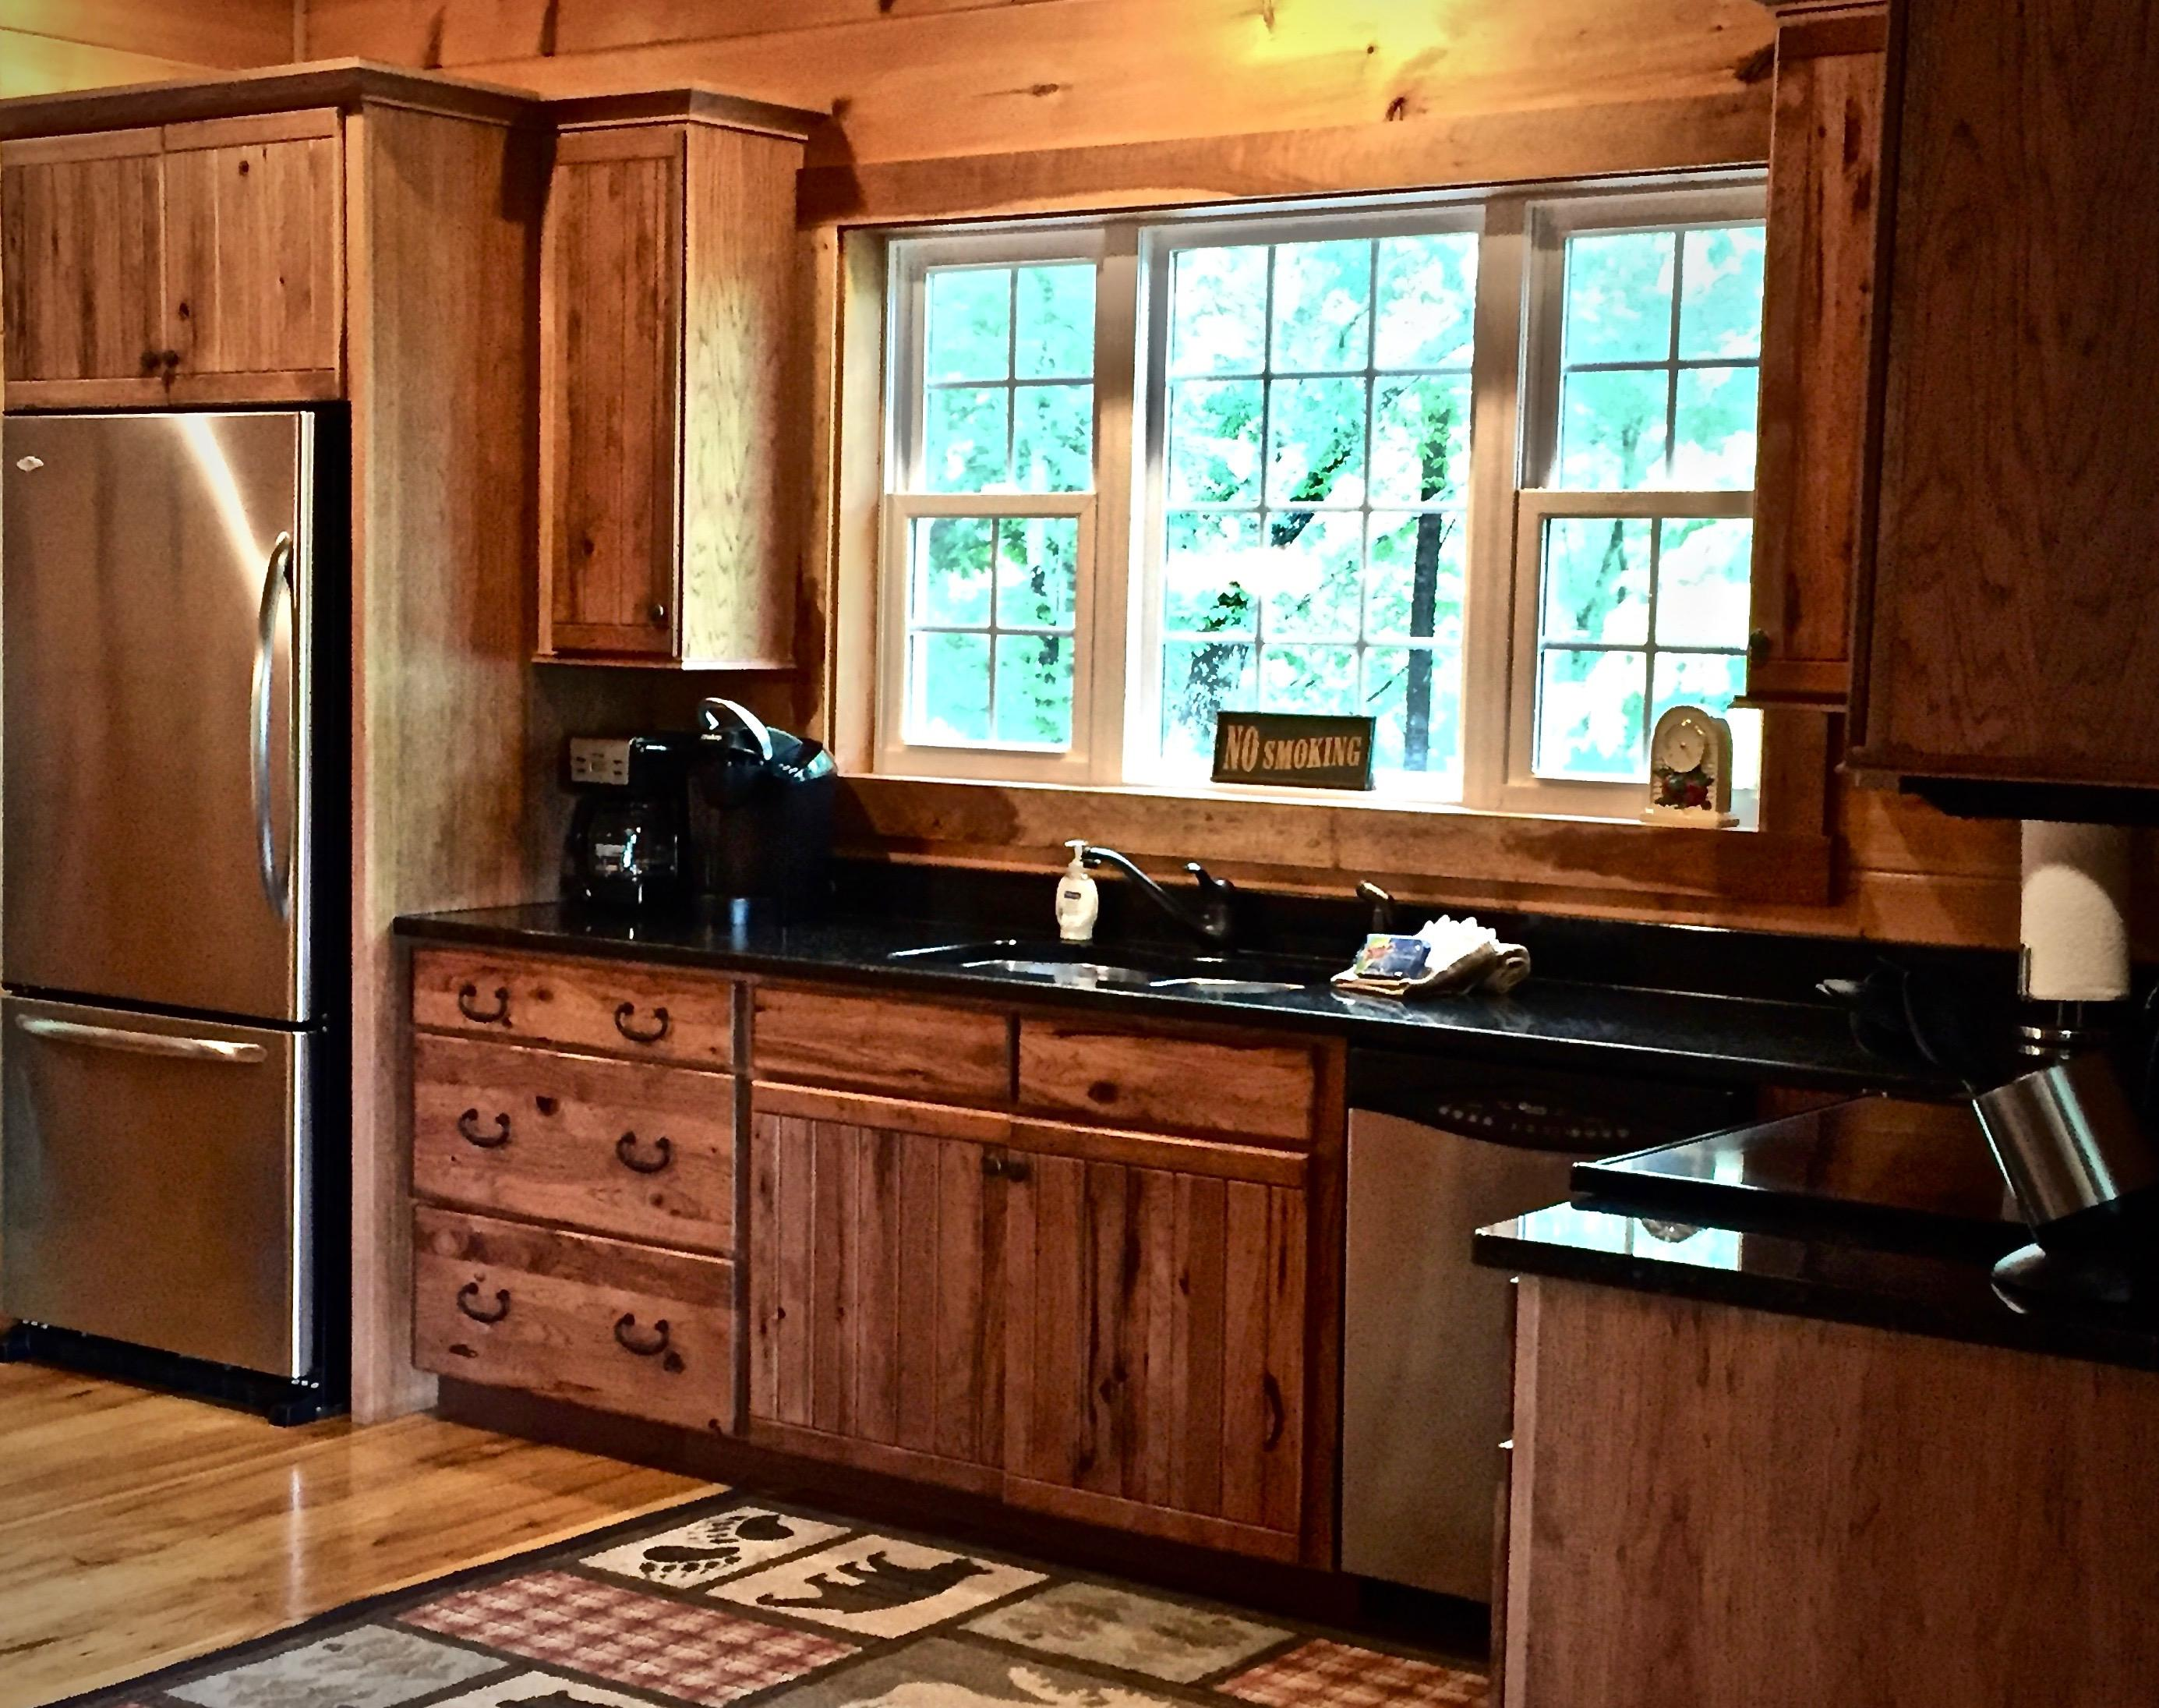 Keurig and Coffee Maker, as well as everything you will need to Cook and Enjoy your meals without ever leaving the Cabin